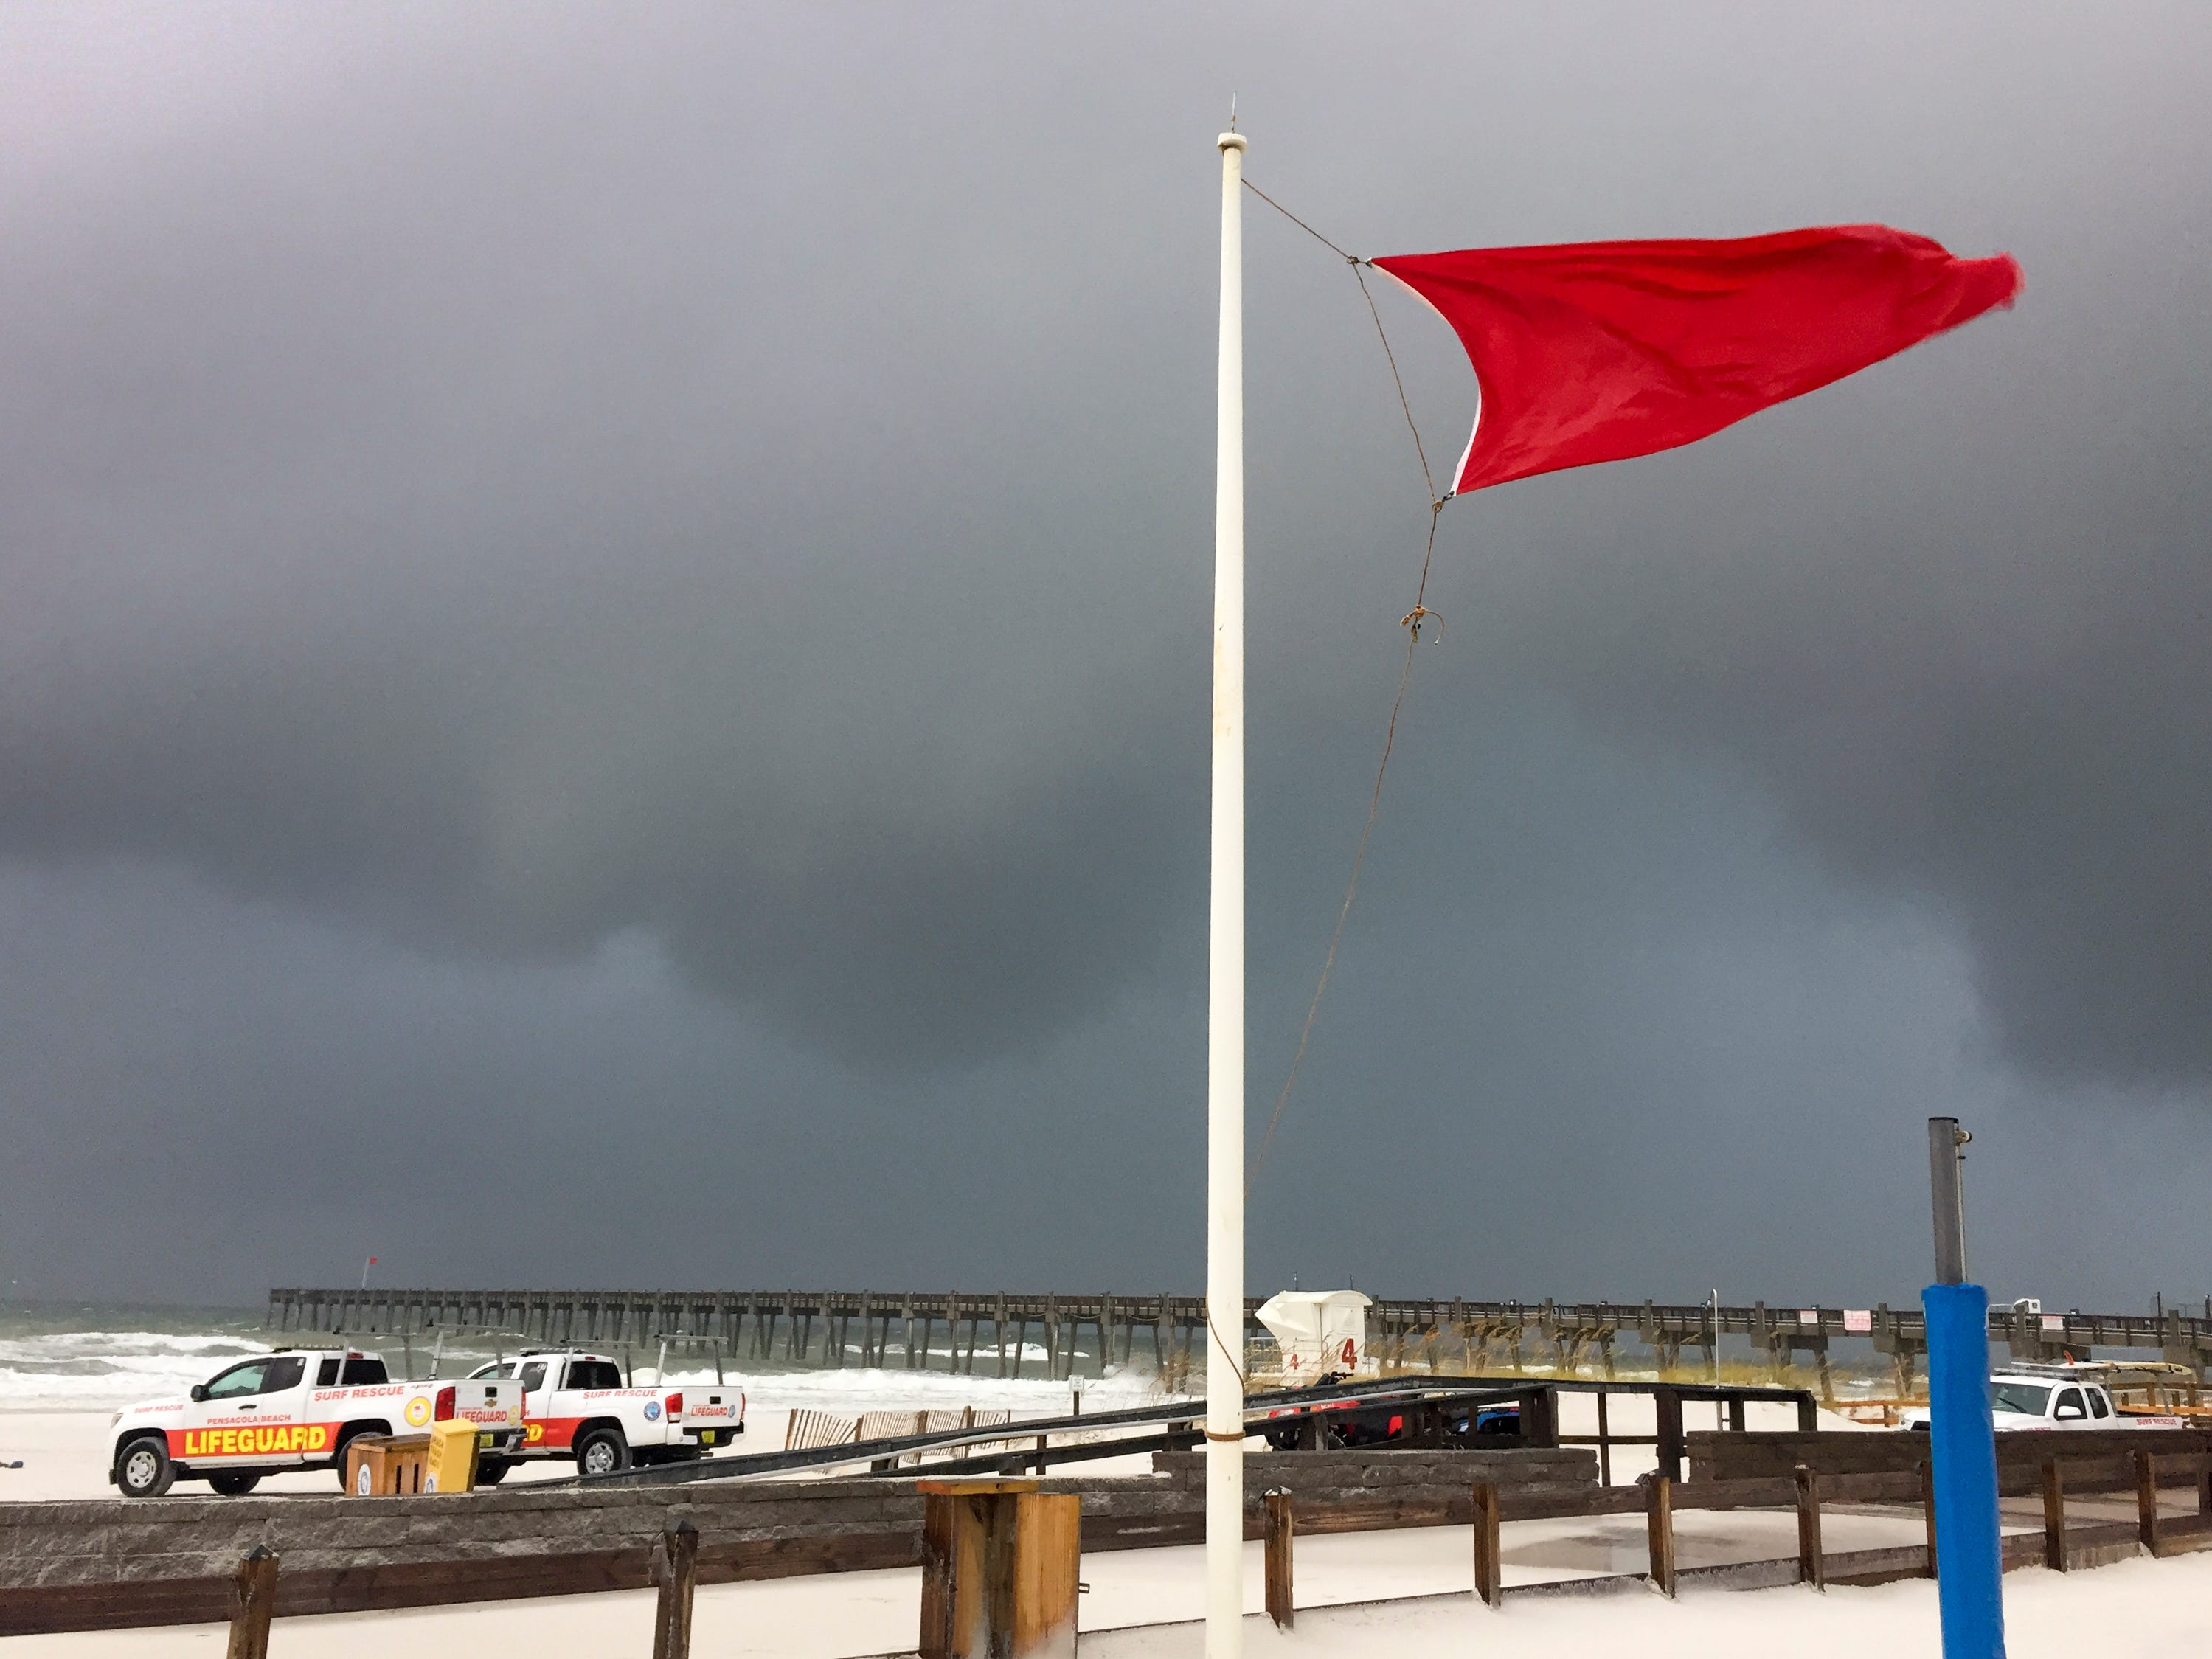 Strong winds continue to blow at Casino Beach as Tropical Storm Gordon leaves Pensacola on Wednesday, September 5, 2018.